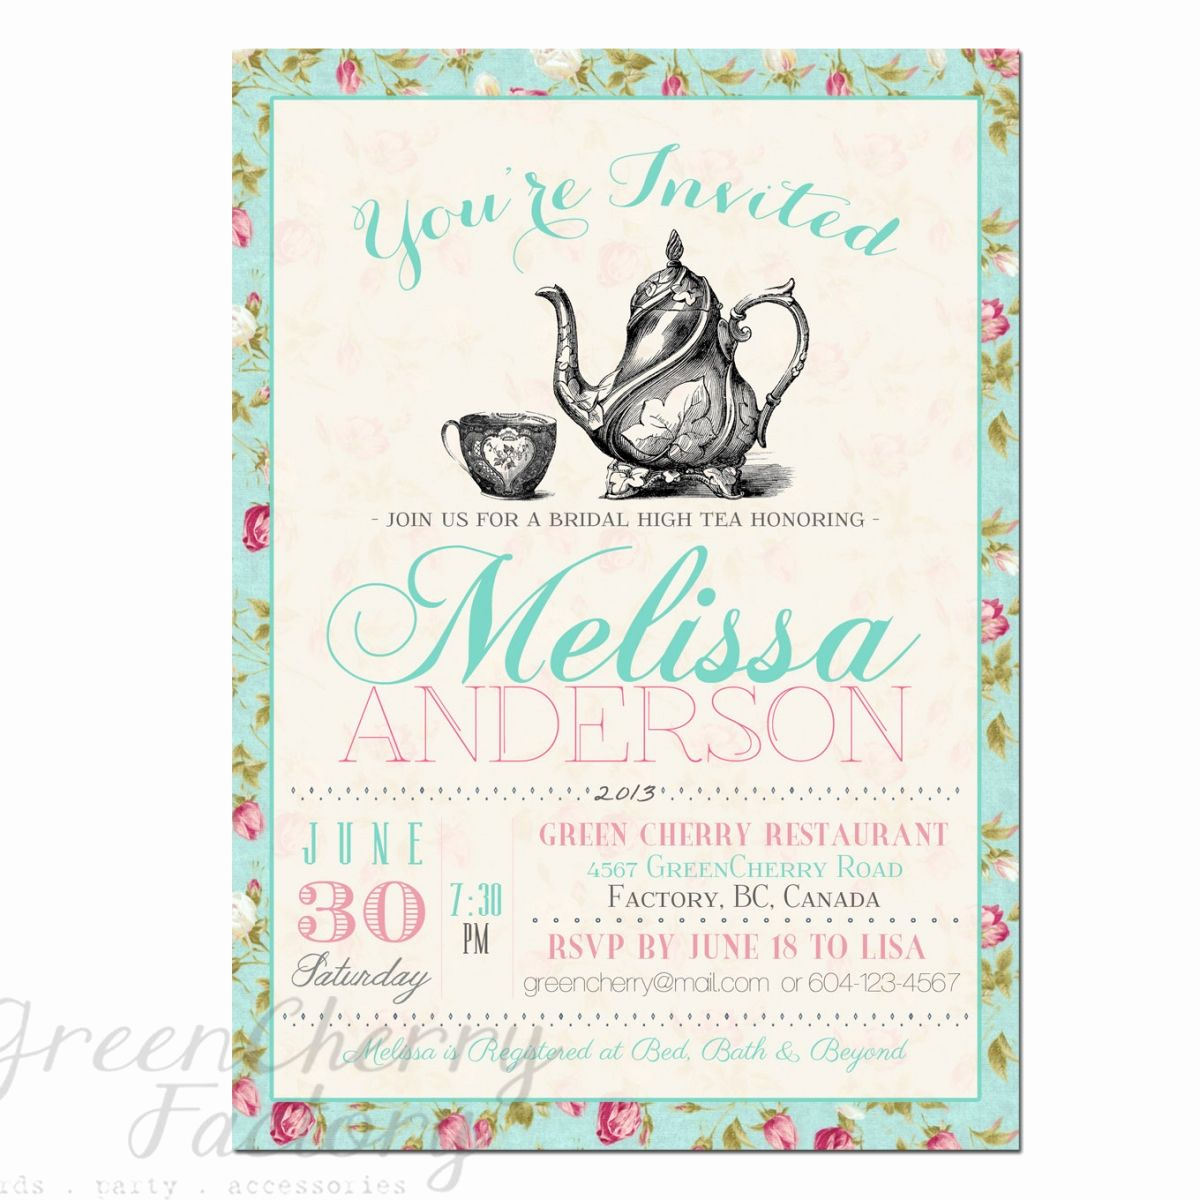 Tea Party Invitation Ideas New Tea Party Invitation Templates to Print